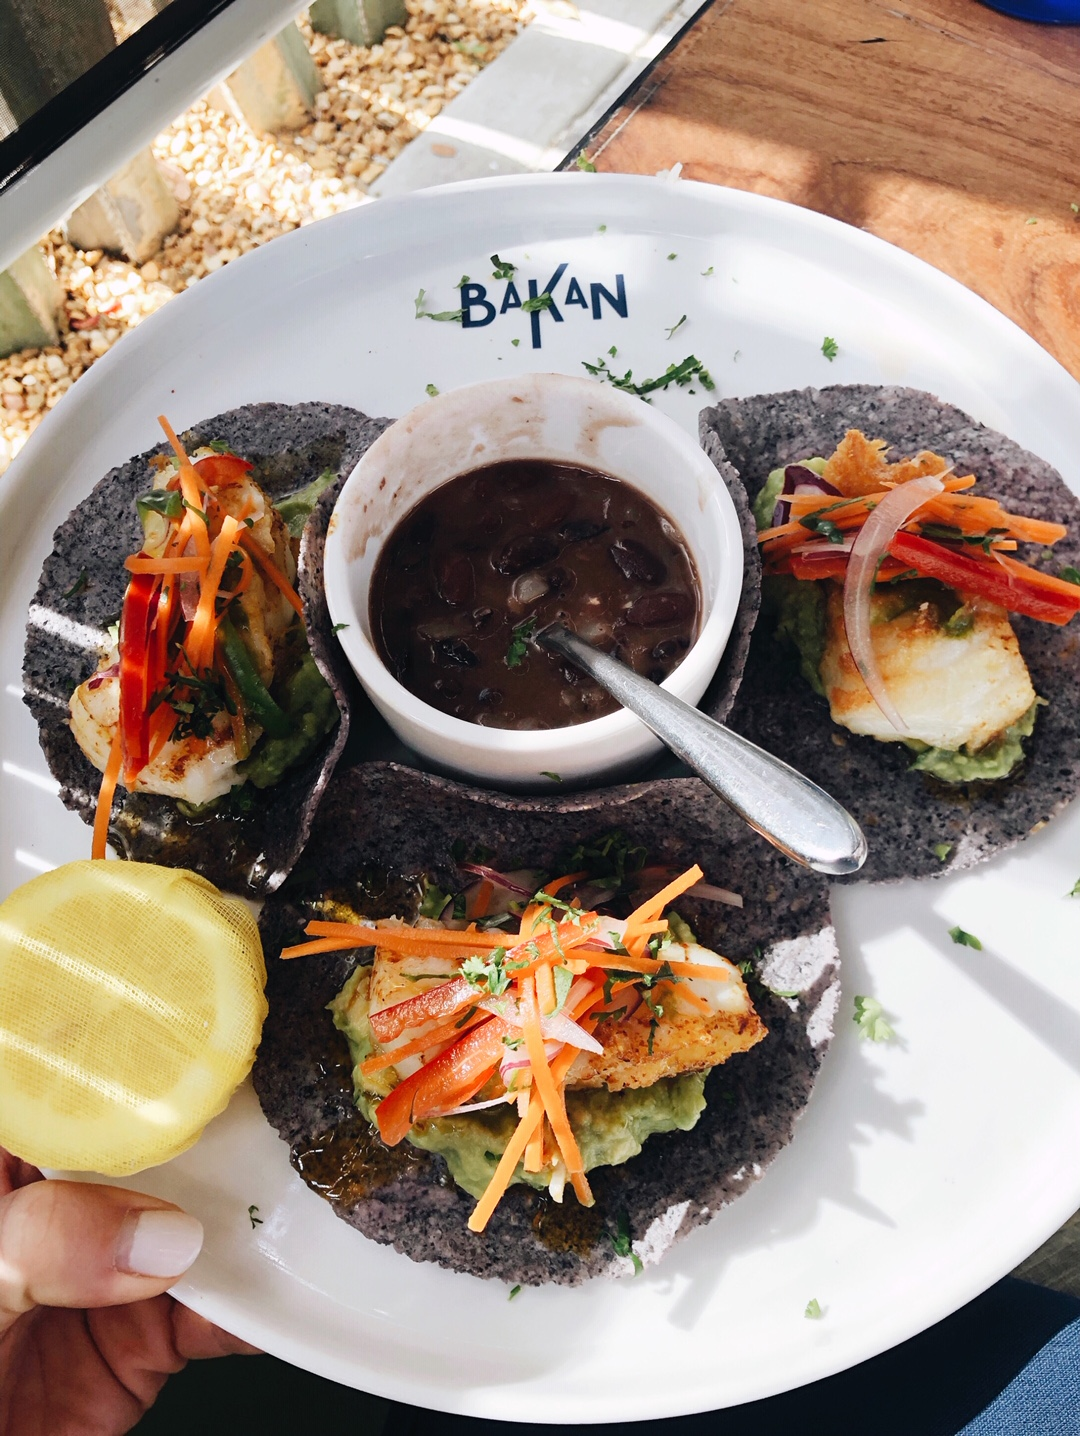 The Robalo Chileno tacos from Bakan in Wynwood, FL are SO good - chilean seabass, veggies, yuzu-basil, guacamole & black beans. They also pair their mezcal drinks with food.